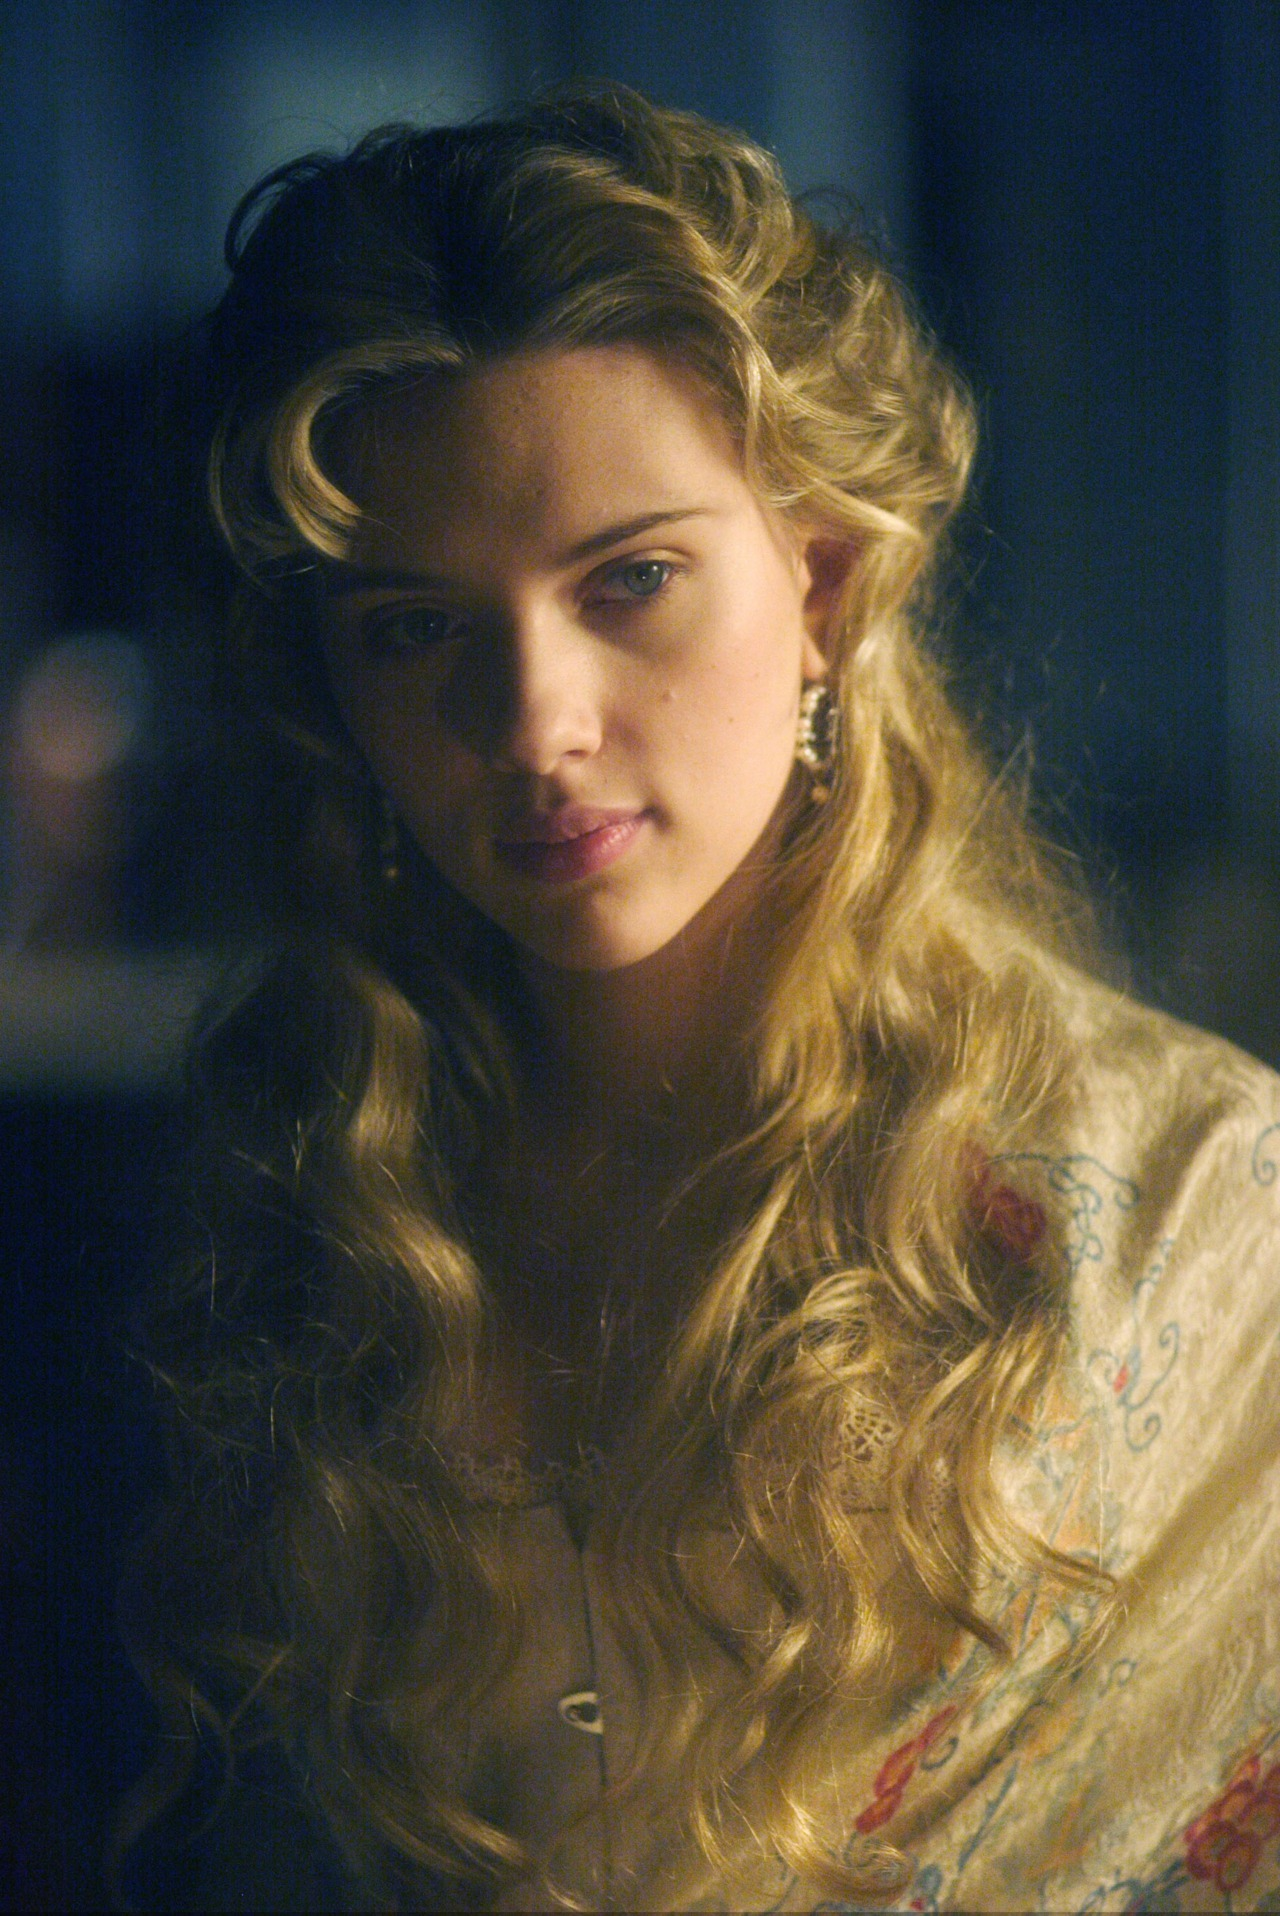 Scarlett Johansson in The Prestige